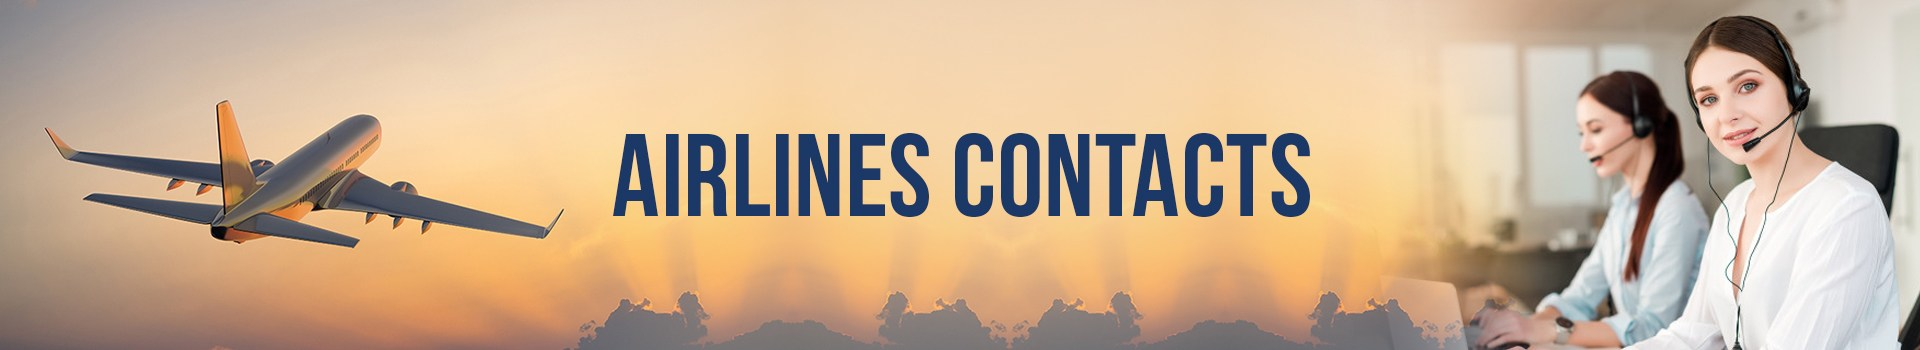 Airline Contacts